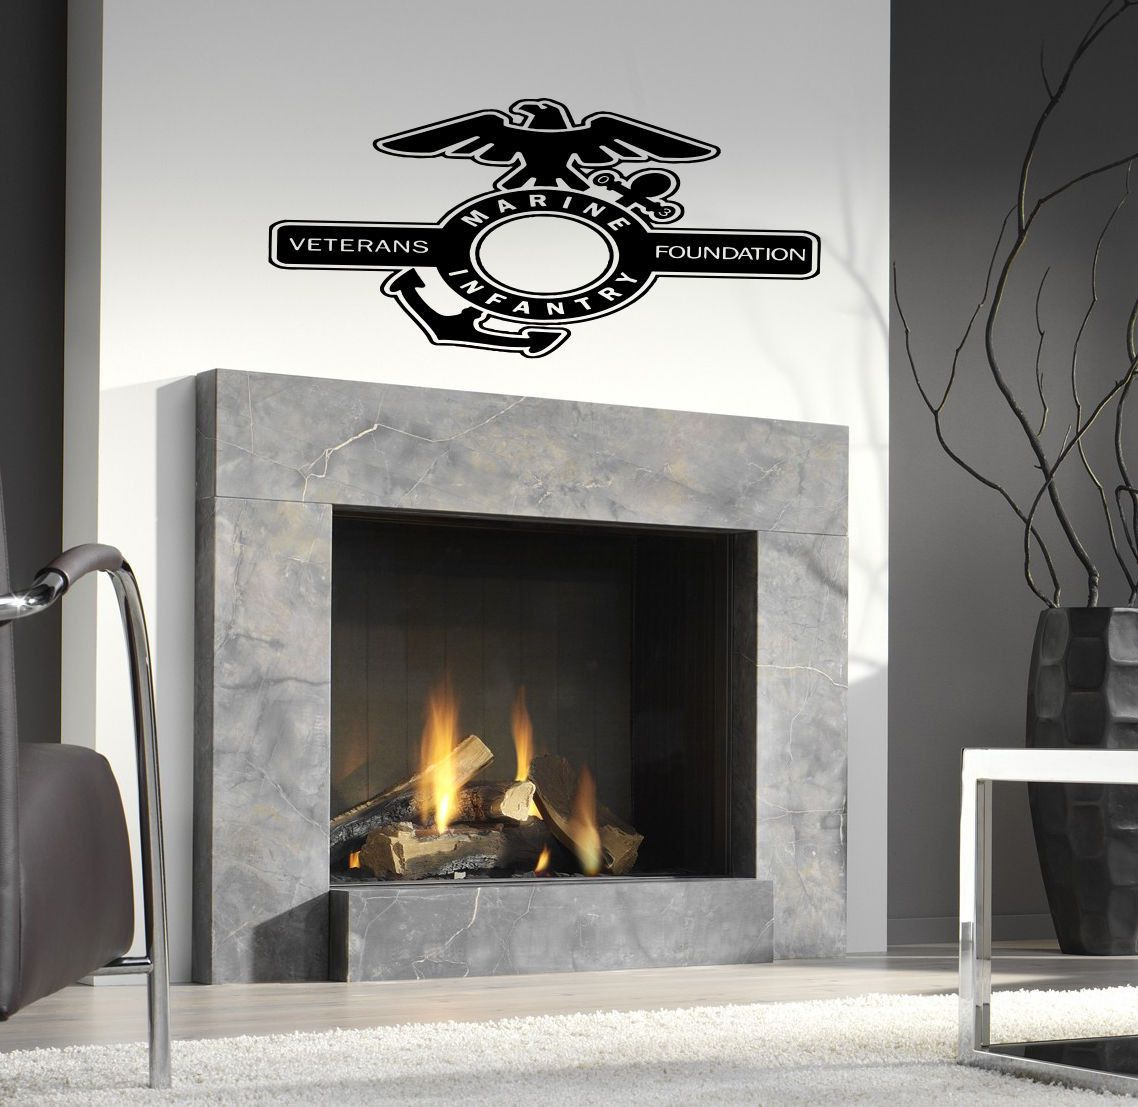 Fireplace Decal Marine Decal Sticker Marine Flag Wall Art Marines Wall